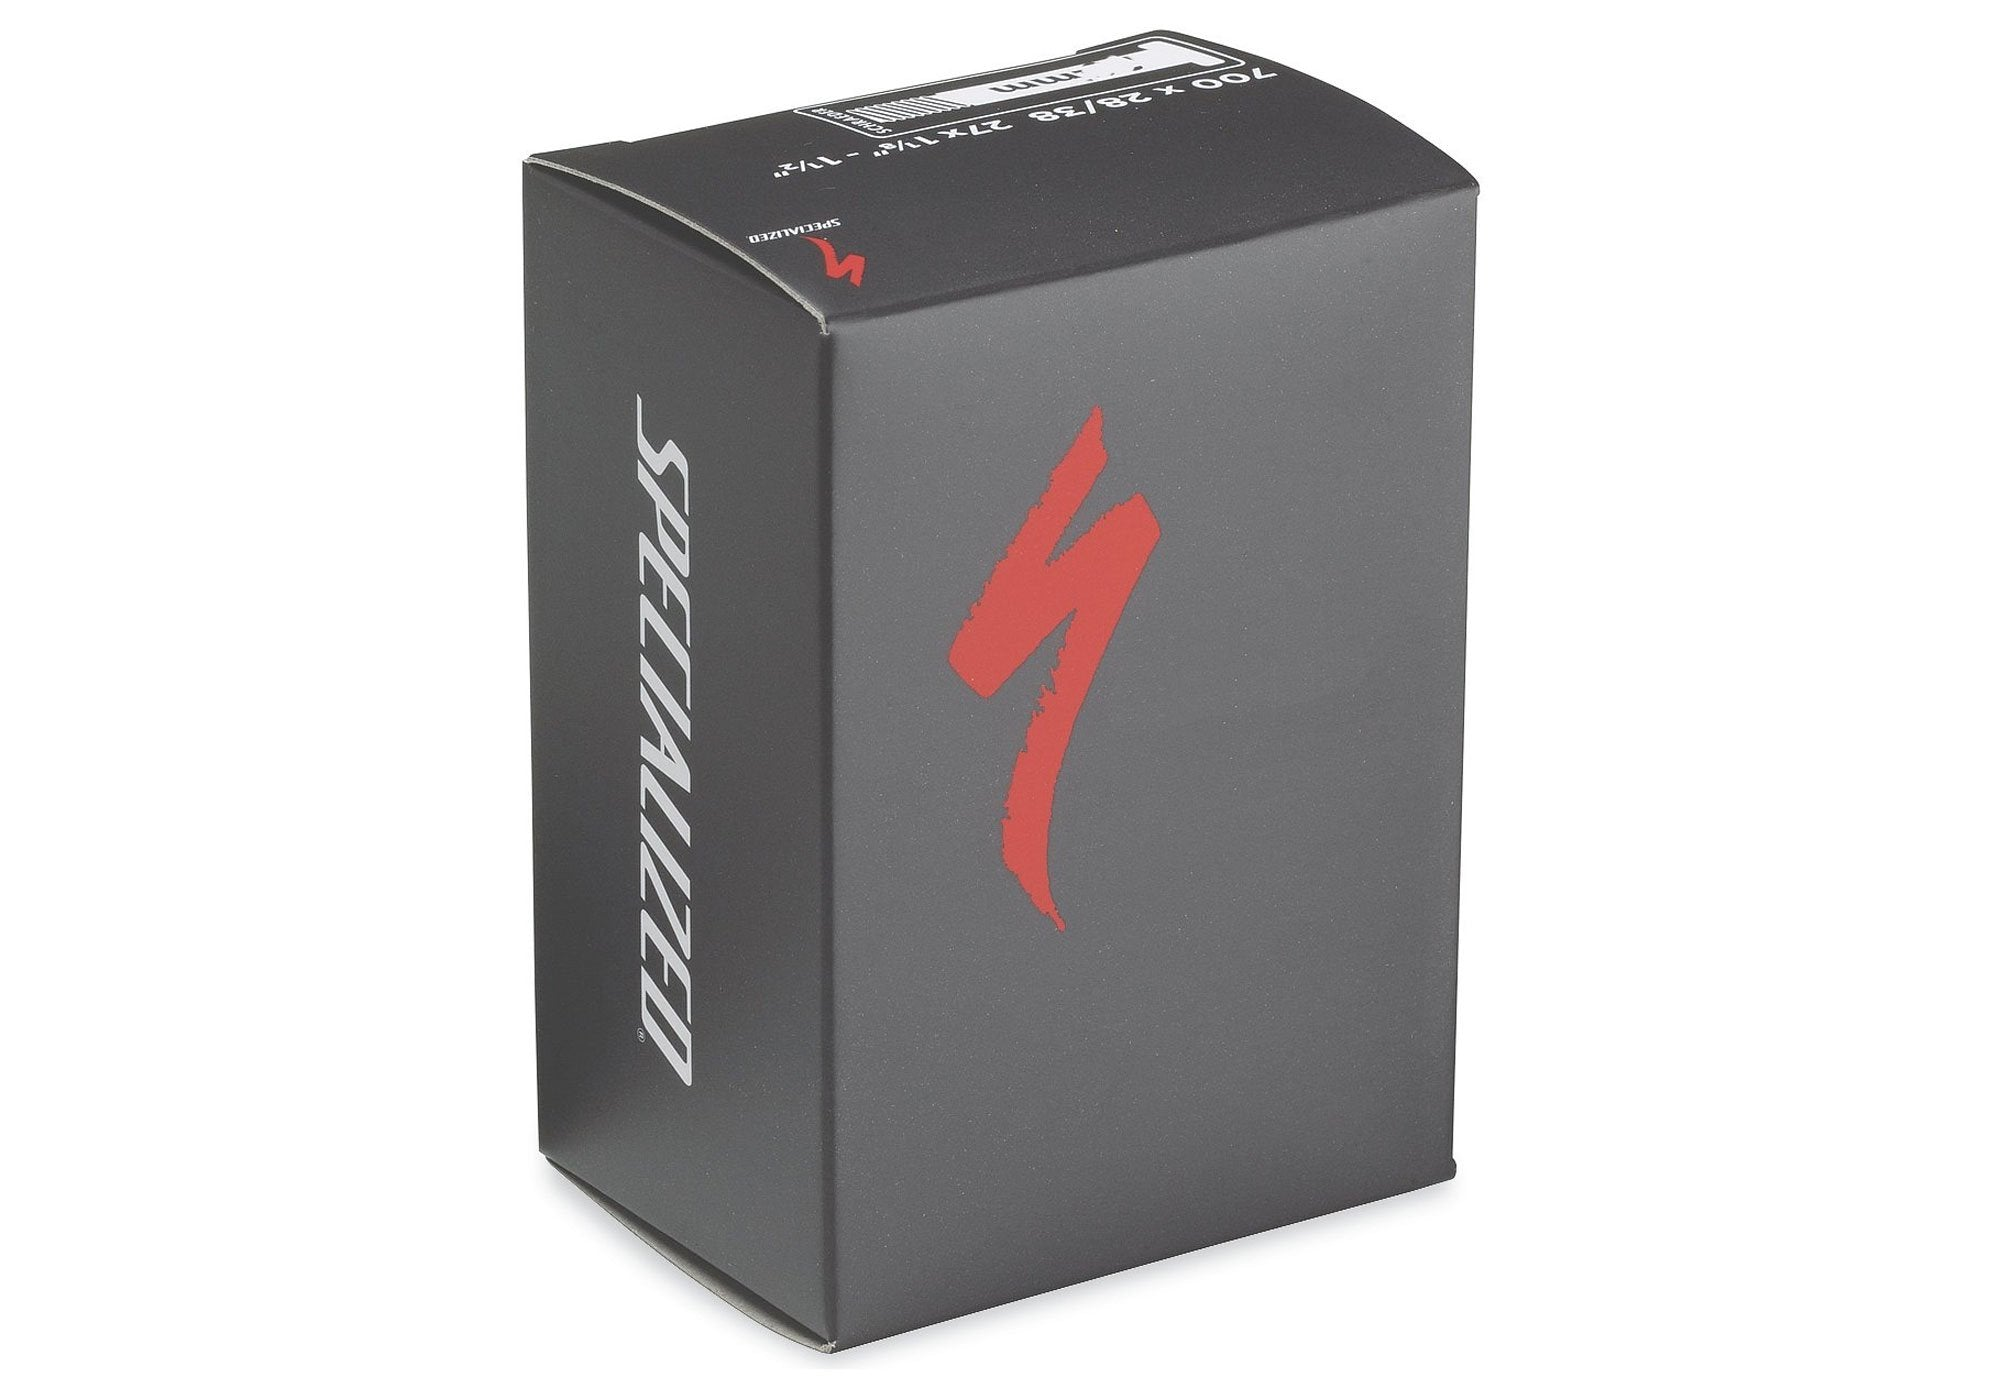 Specialized Schrader Valve Bicycle Tube 700 x 32-50mm - 40mm valve length